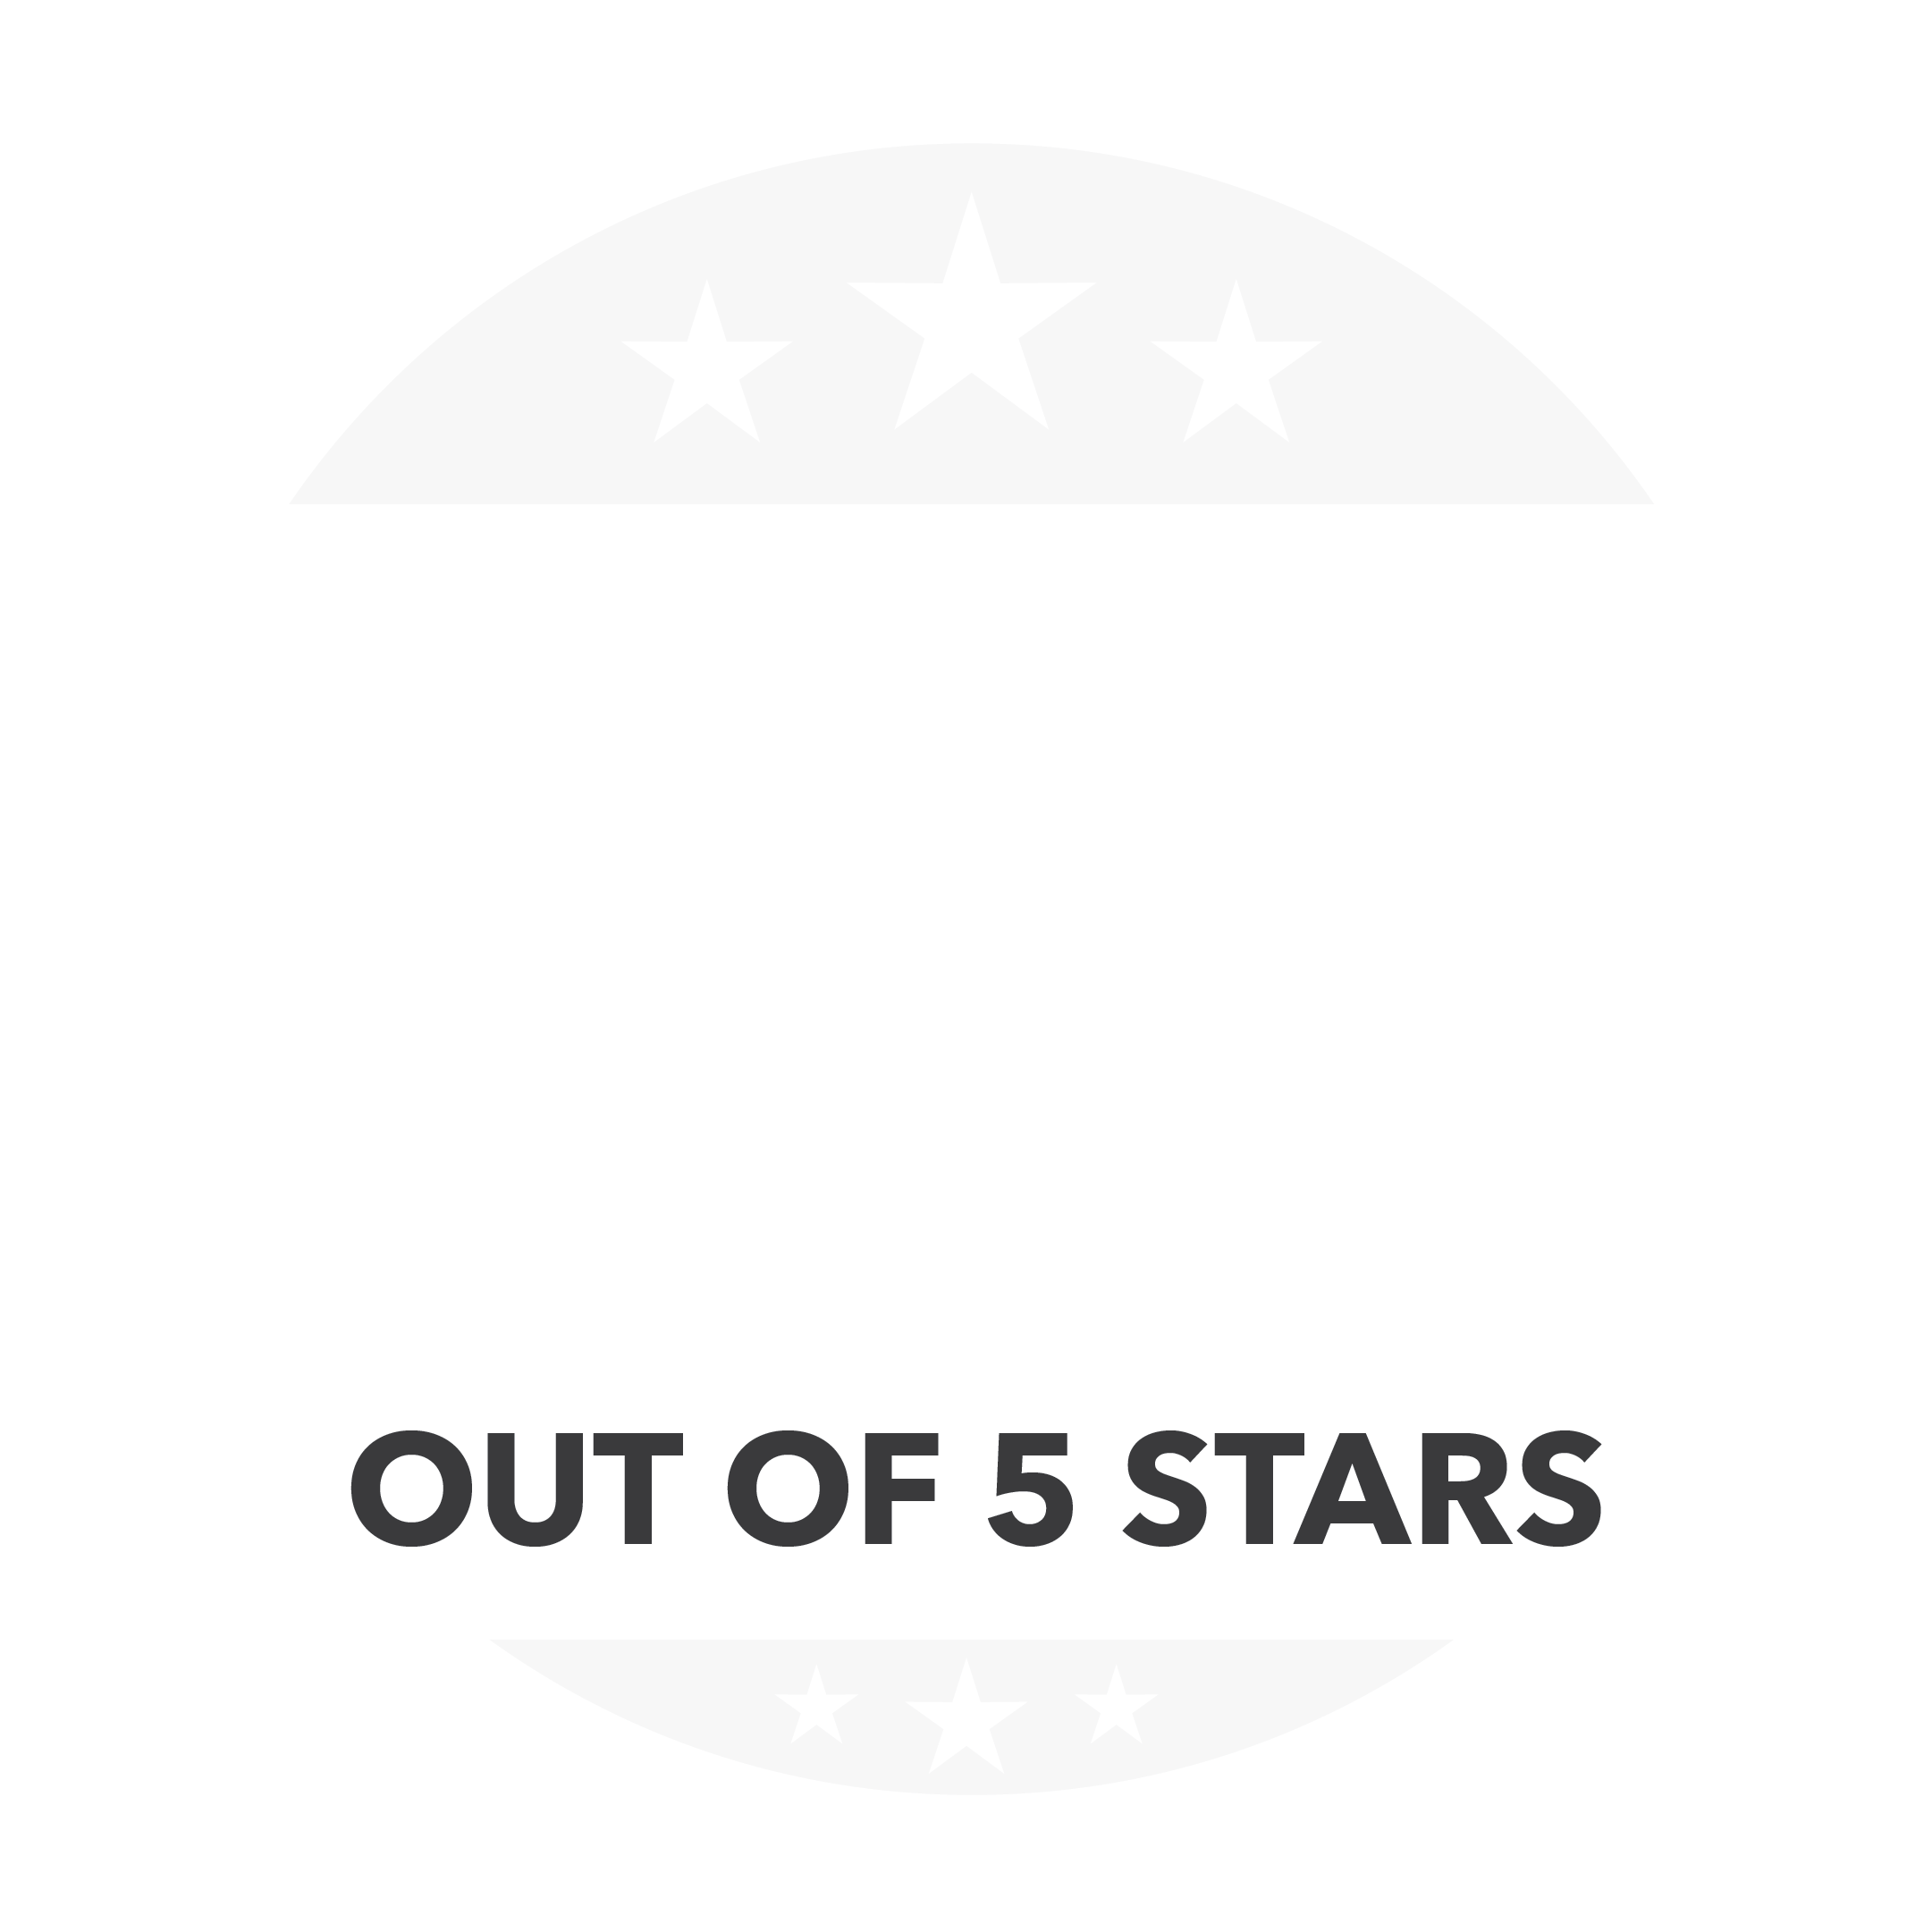 4.89 stars our average client rating